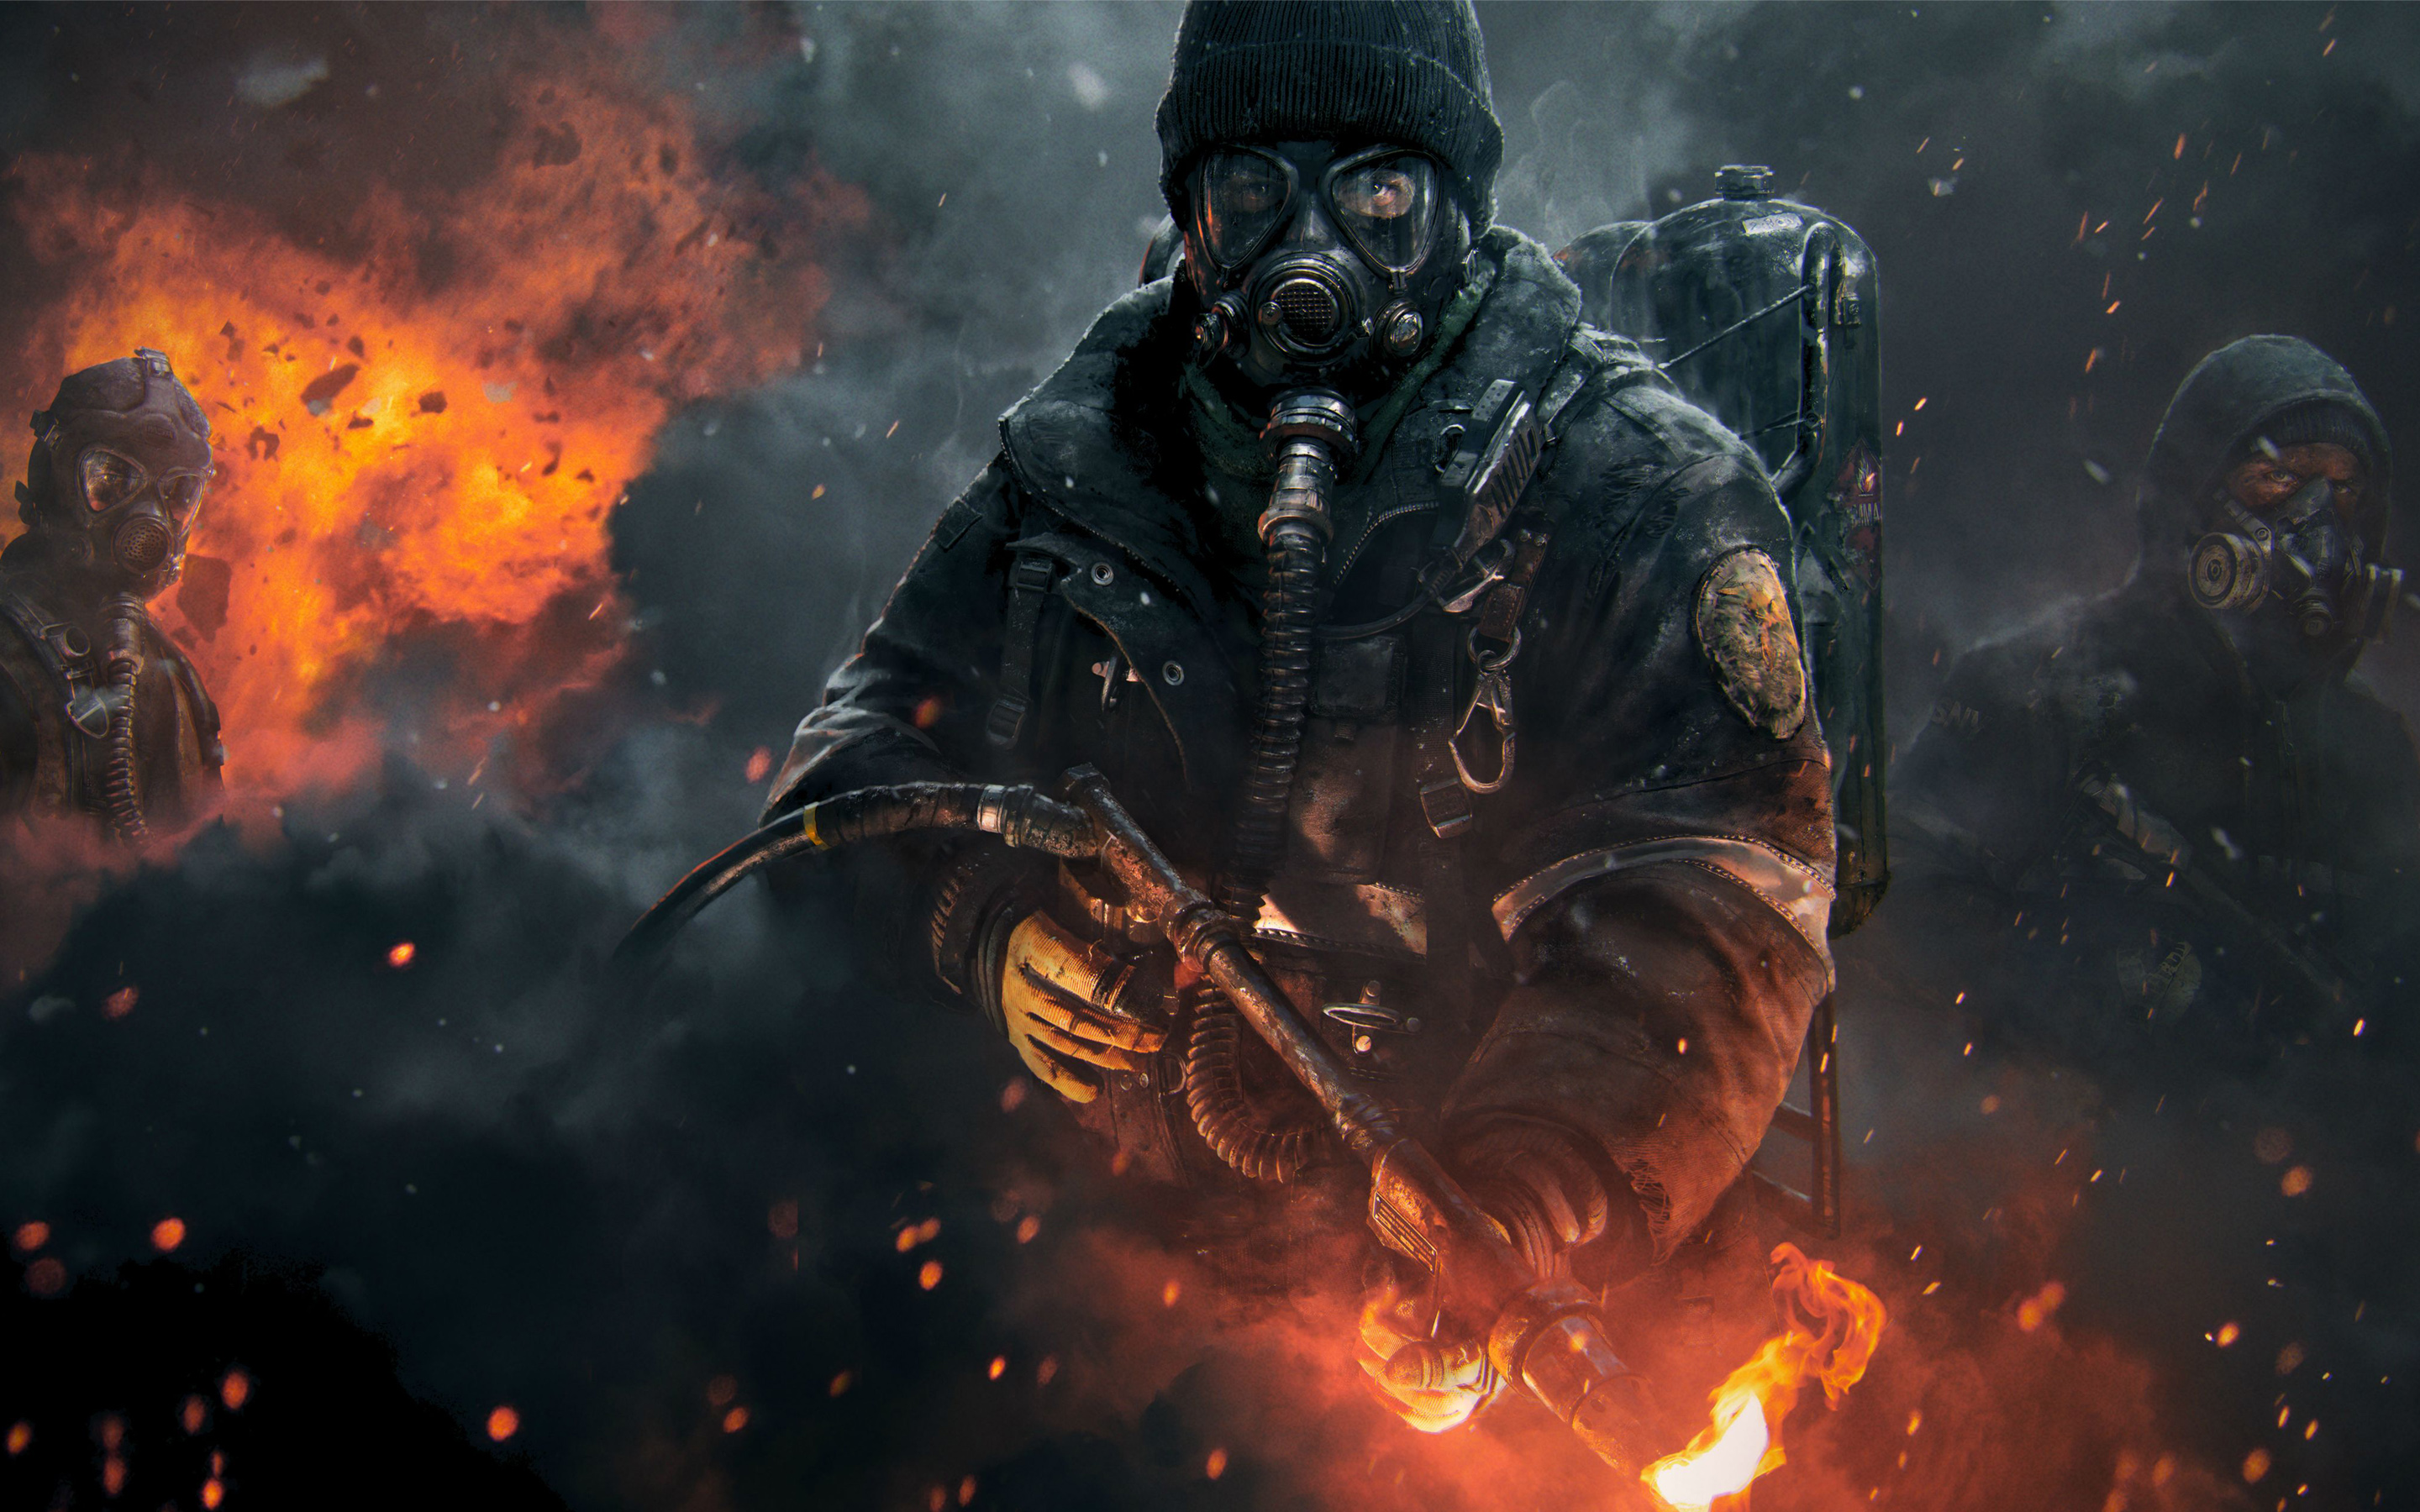 Tom Clancys The Division Wallpapers HD Wallpapers 2880x1800